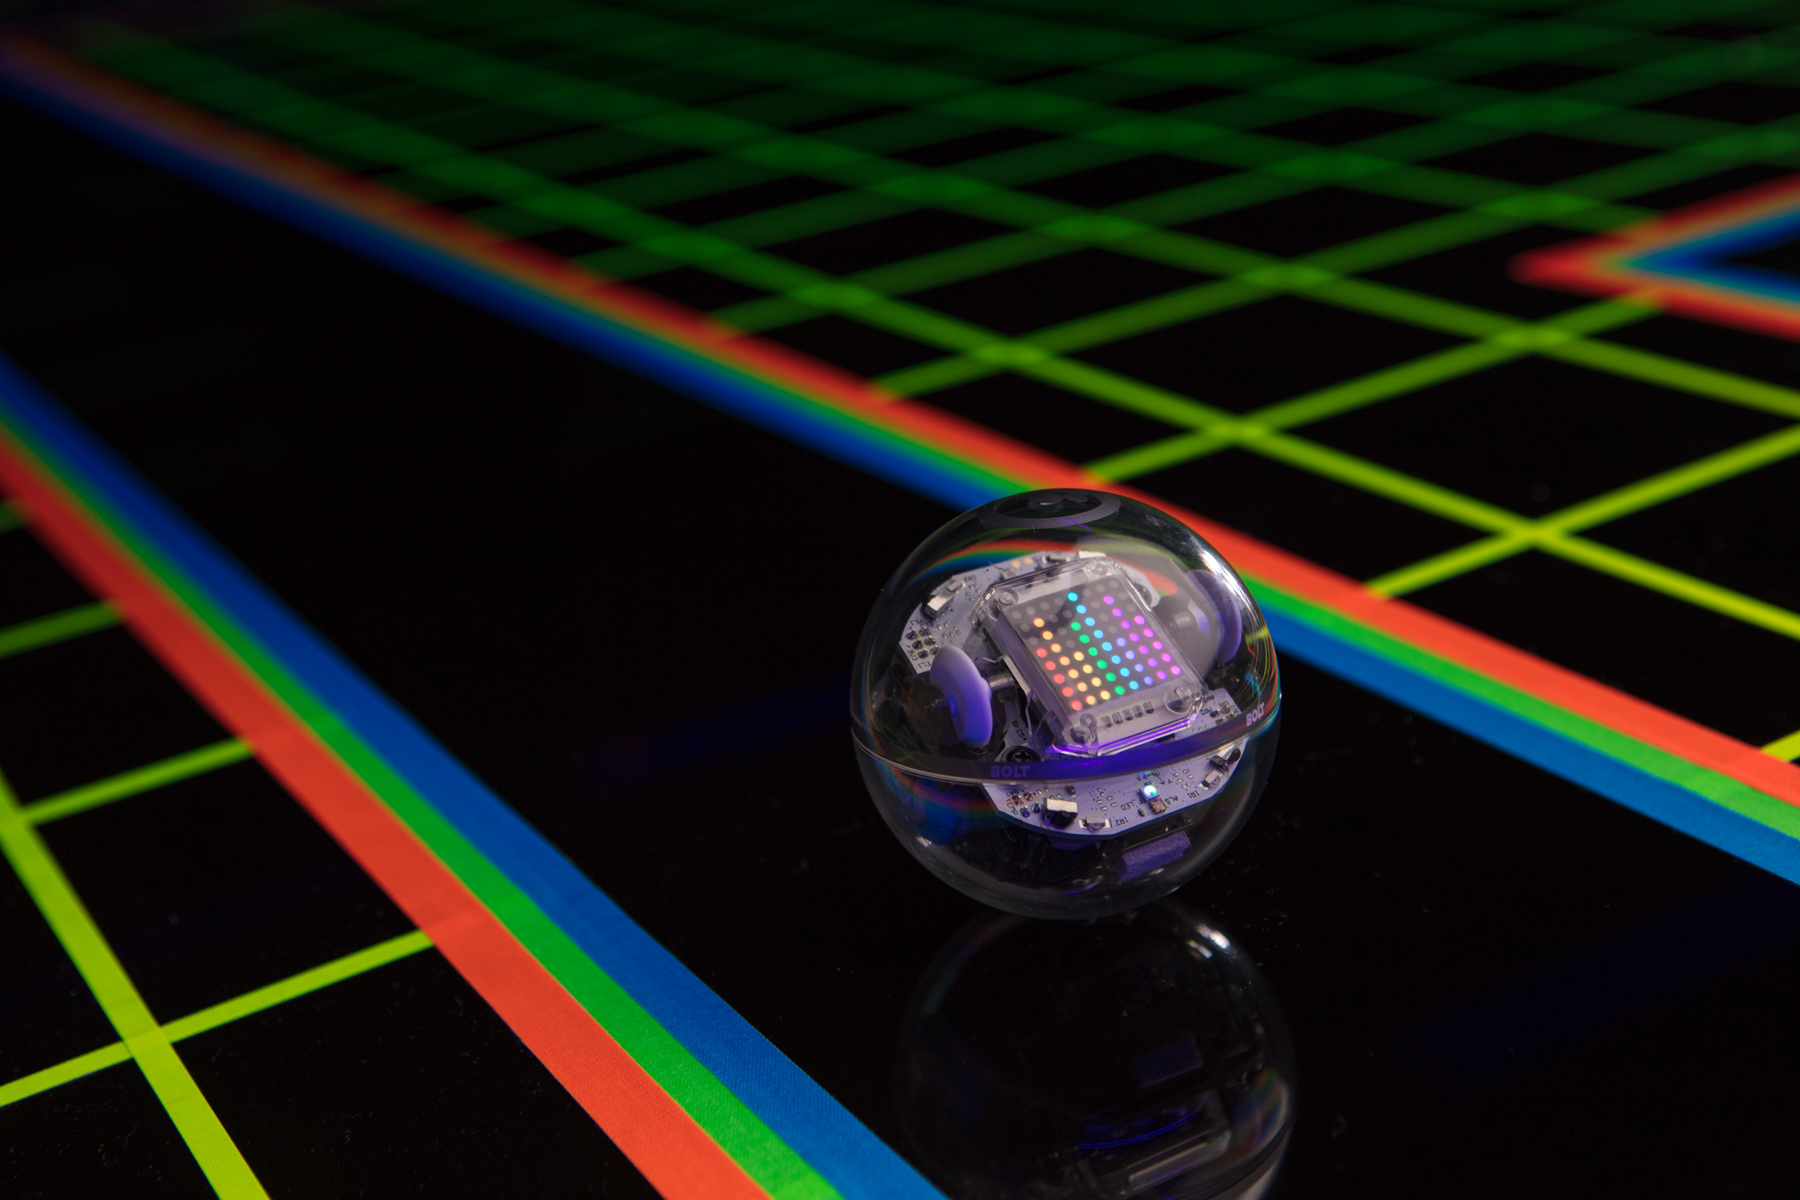 Product photo of BOLT robotic ball by Sphero in black Tron type set.